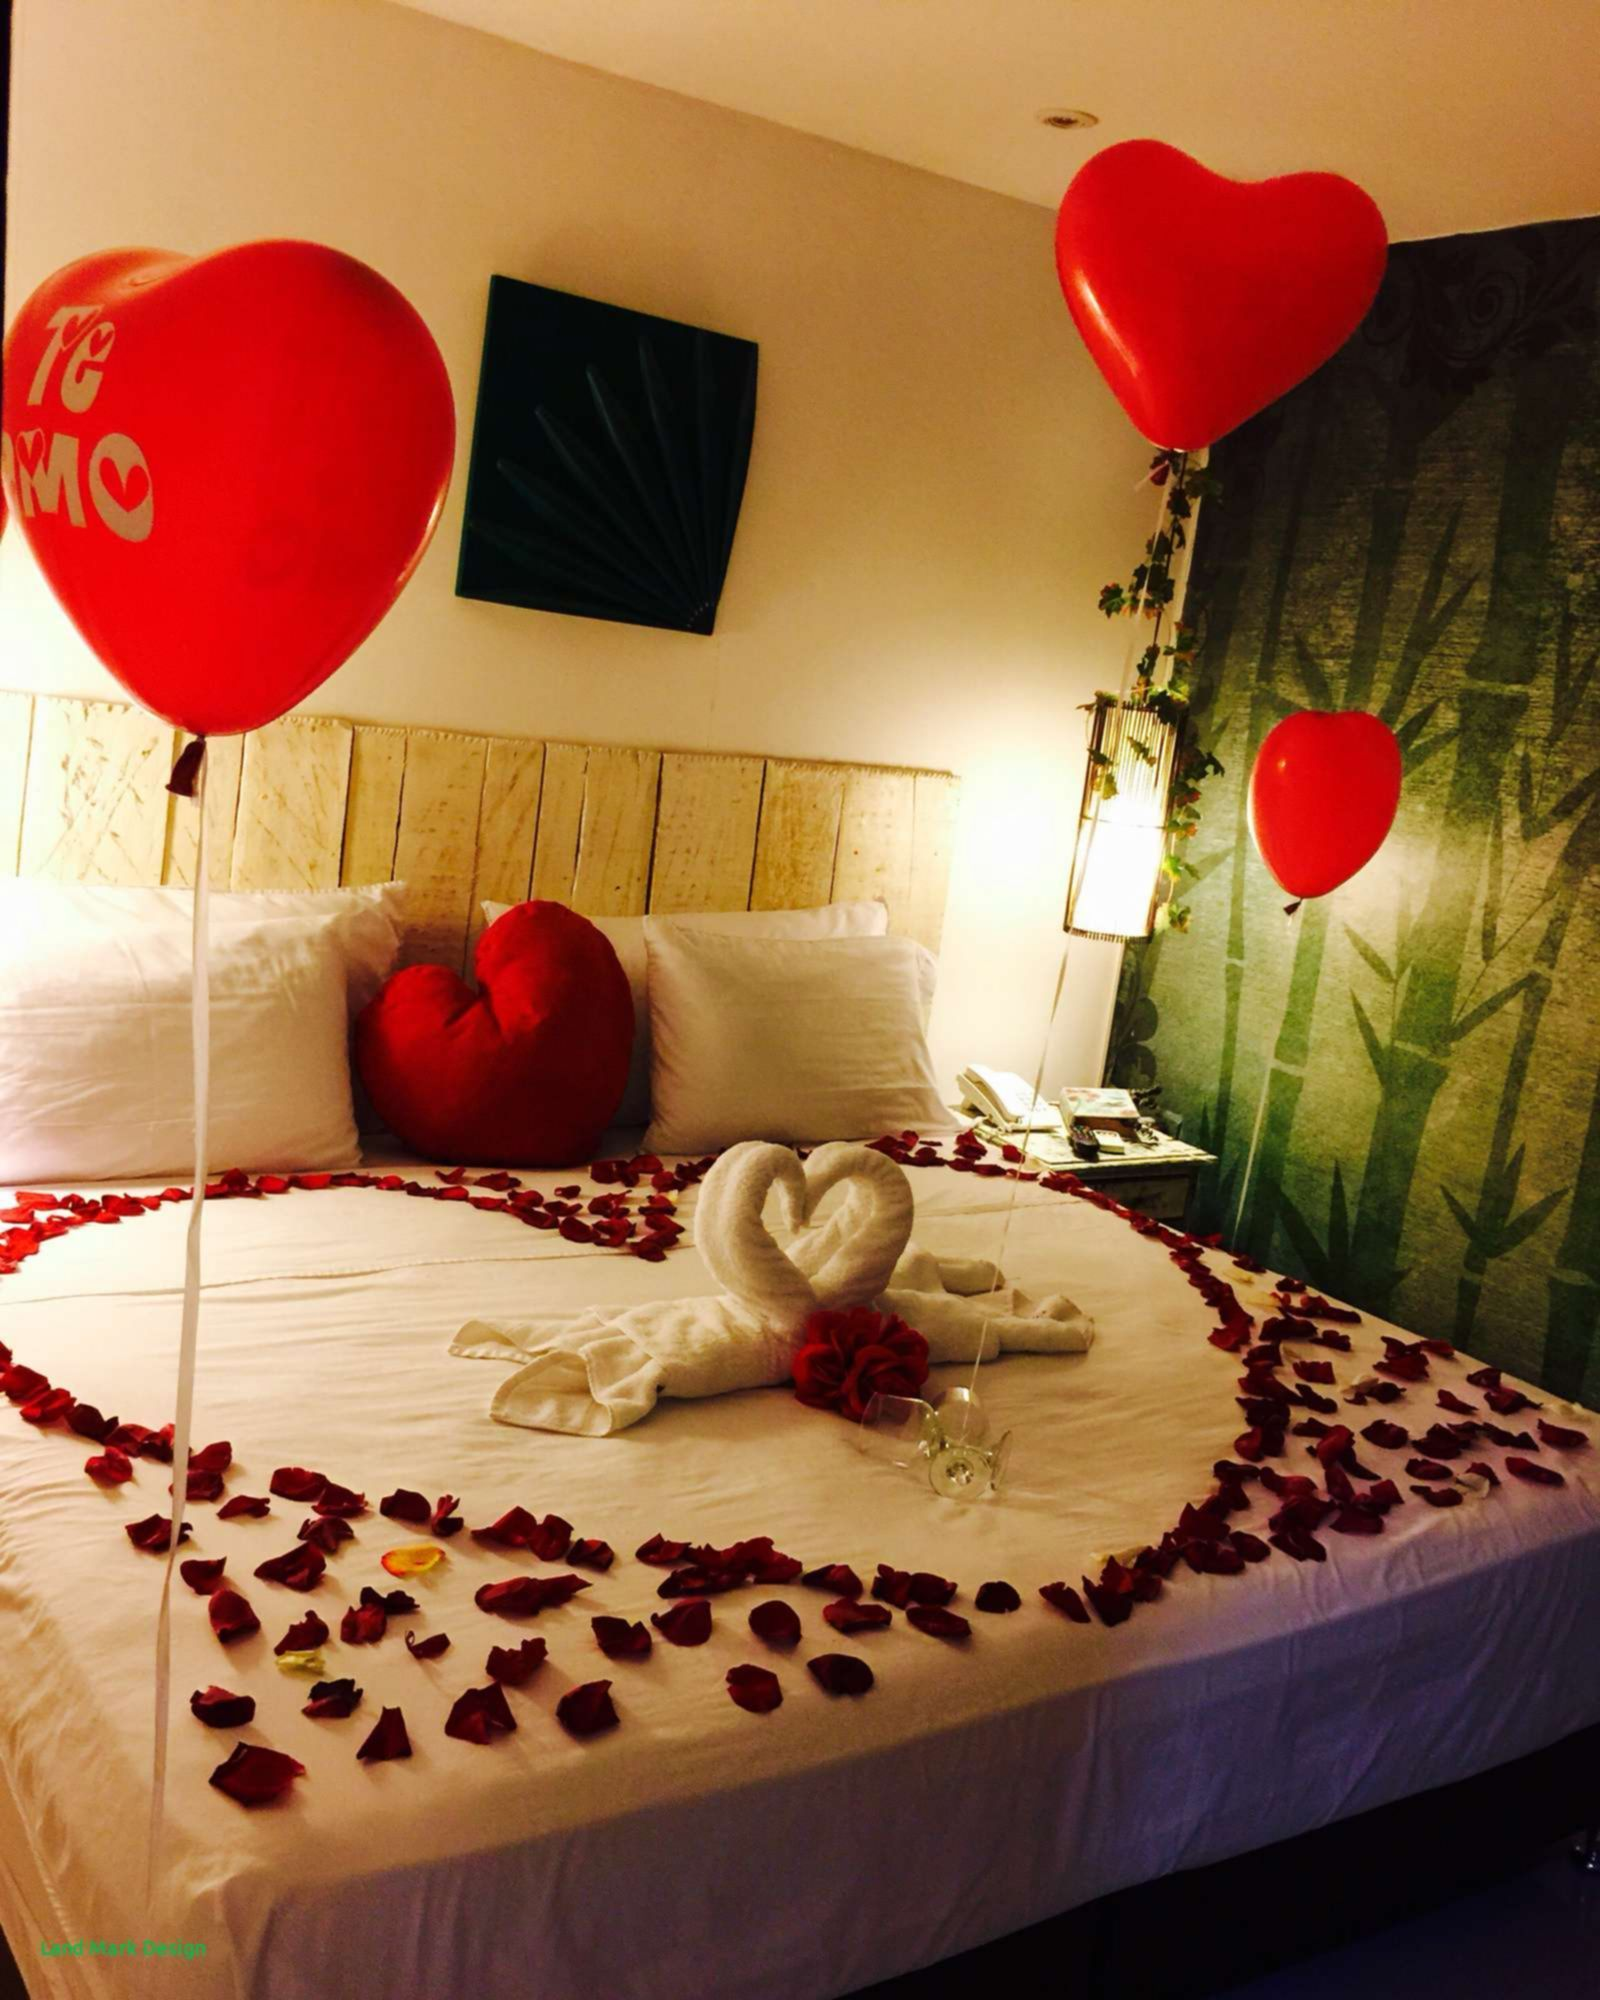 Most Romantic Bedroom Decor: 30 Most Charming Romantic Bedroom Decorations For